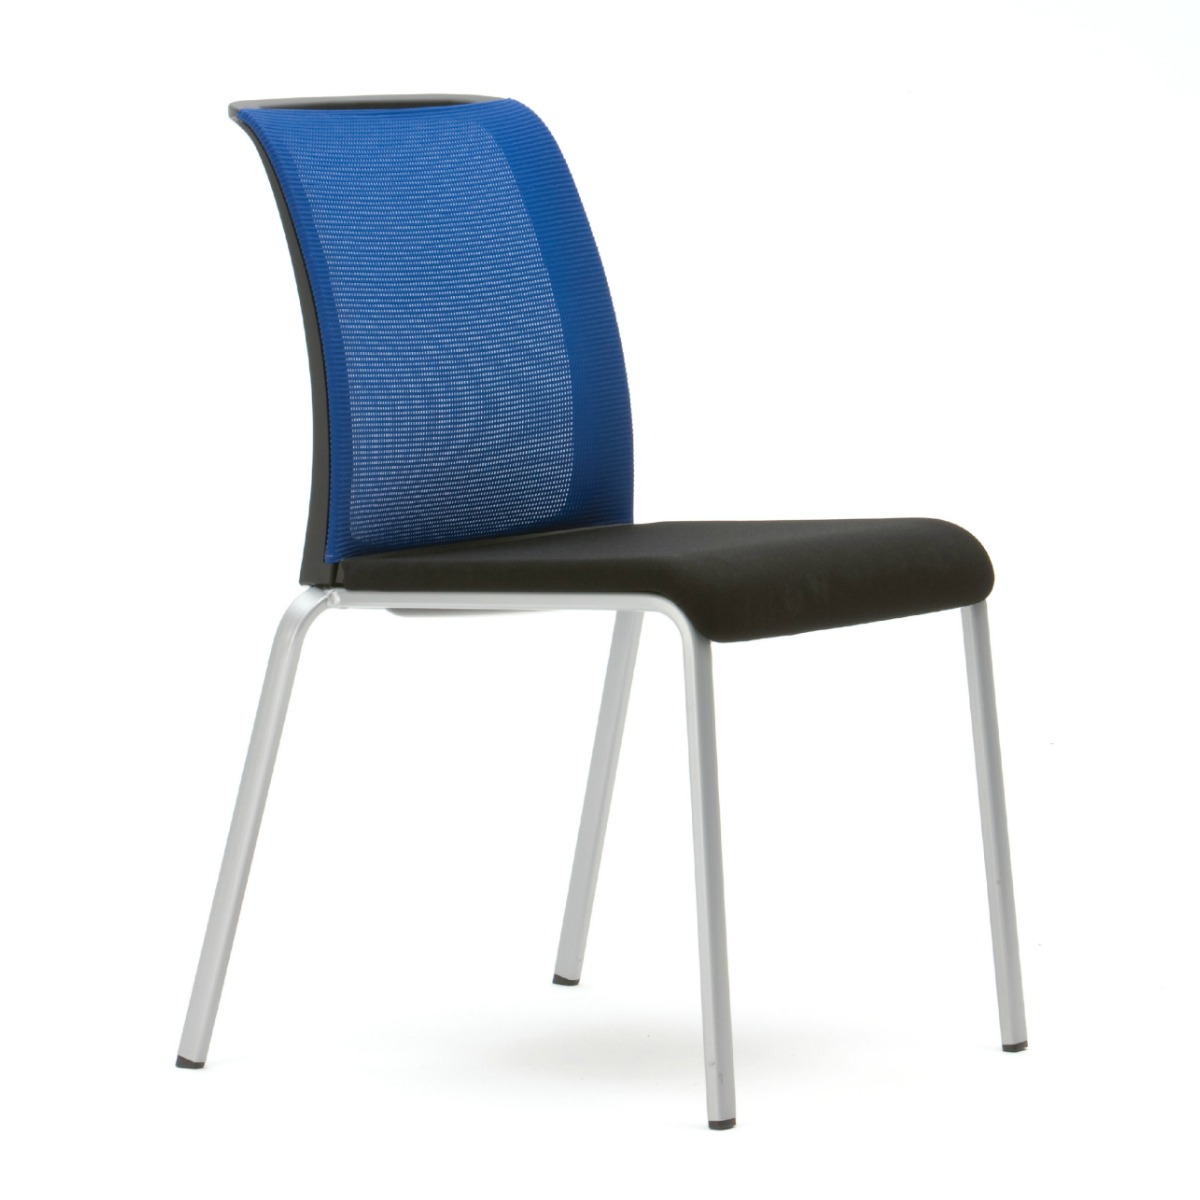 Ergonomic task chair - Shop Steelcase Reply Guest Mesh Chairs At The Human Solution